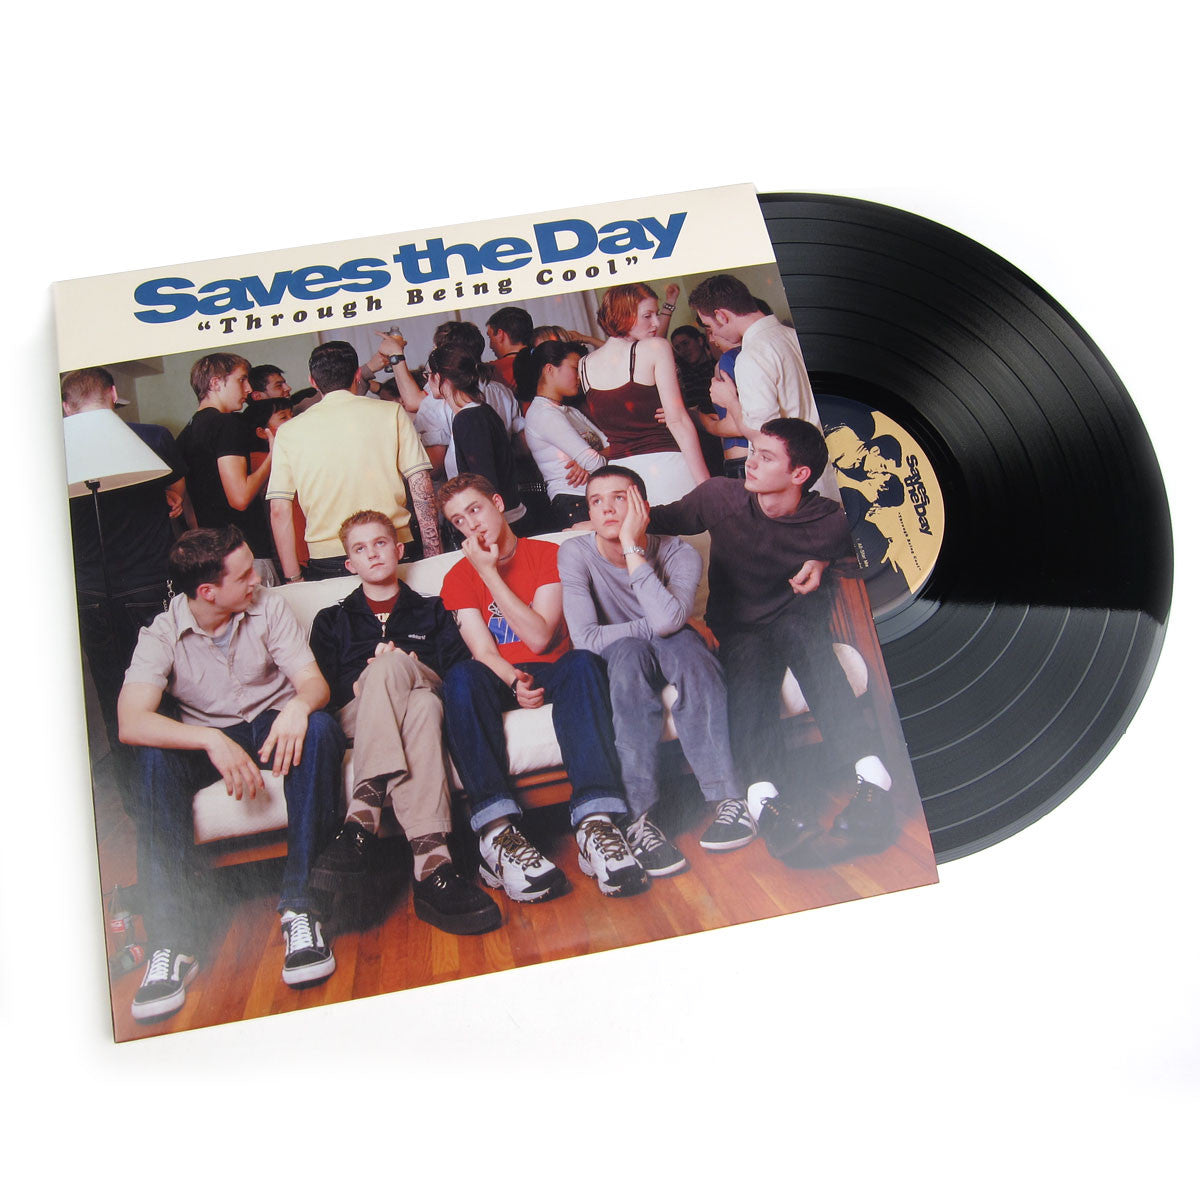 Saves The Day: Through Being Cool (180g) Vinyl LP